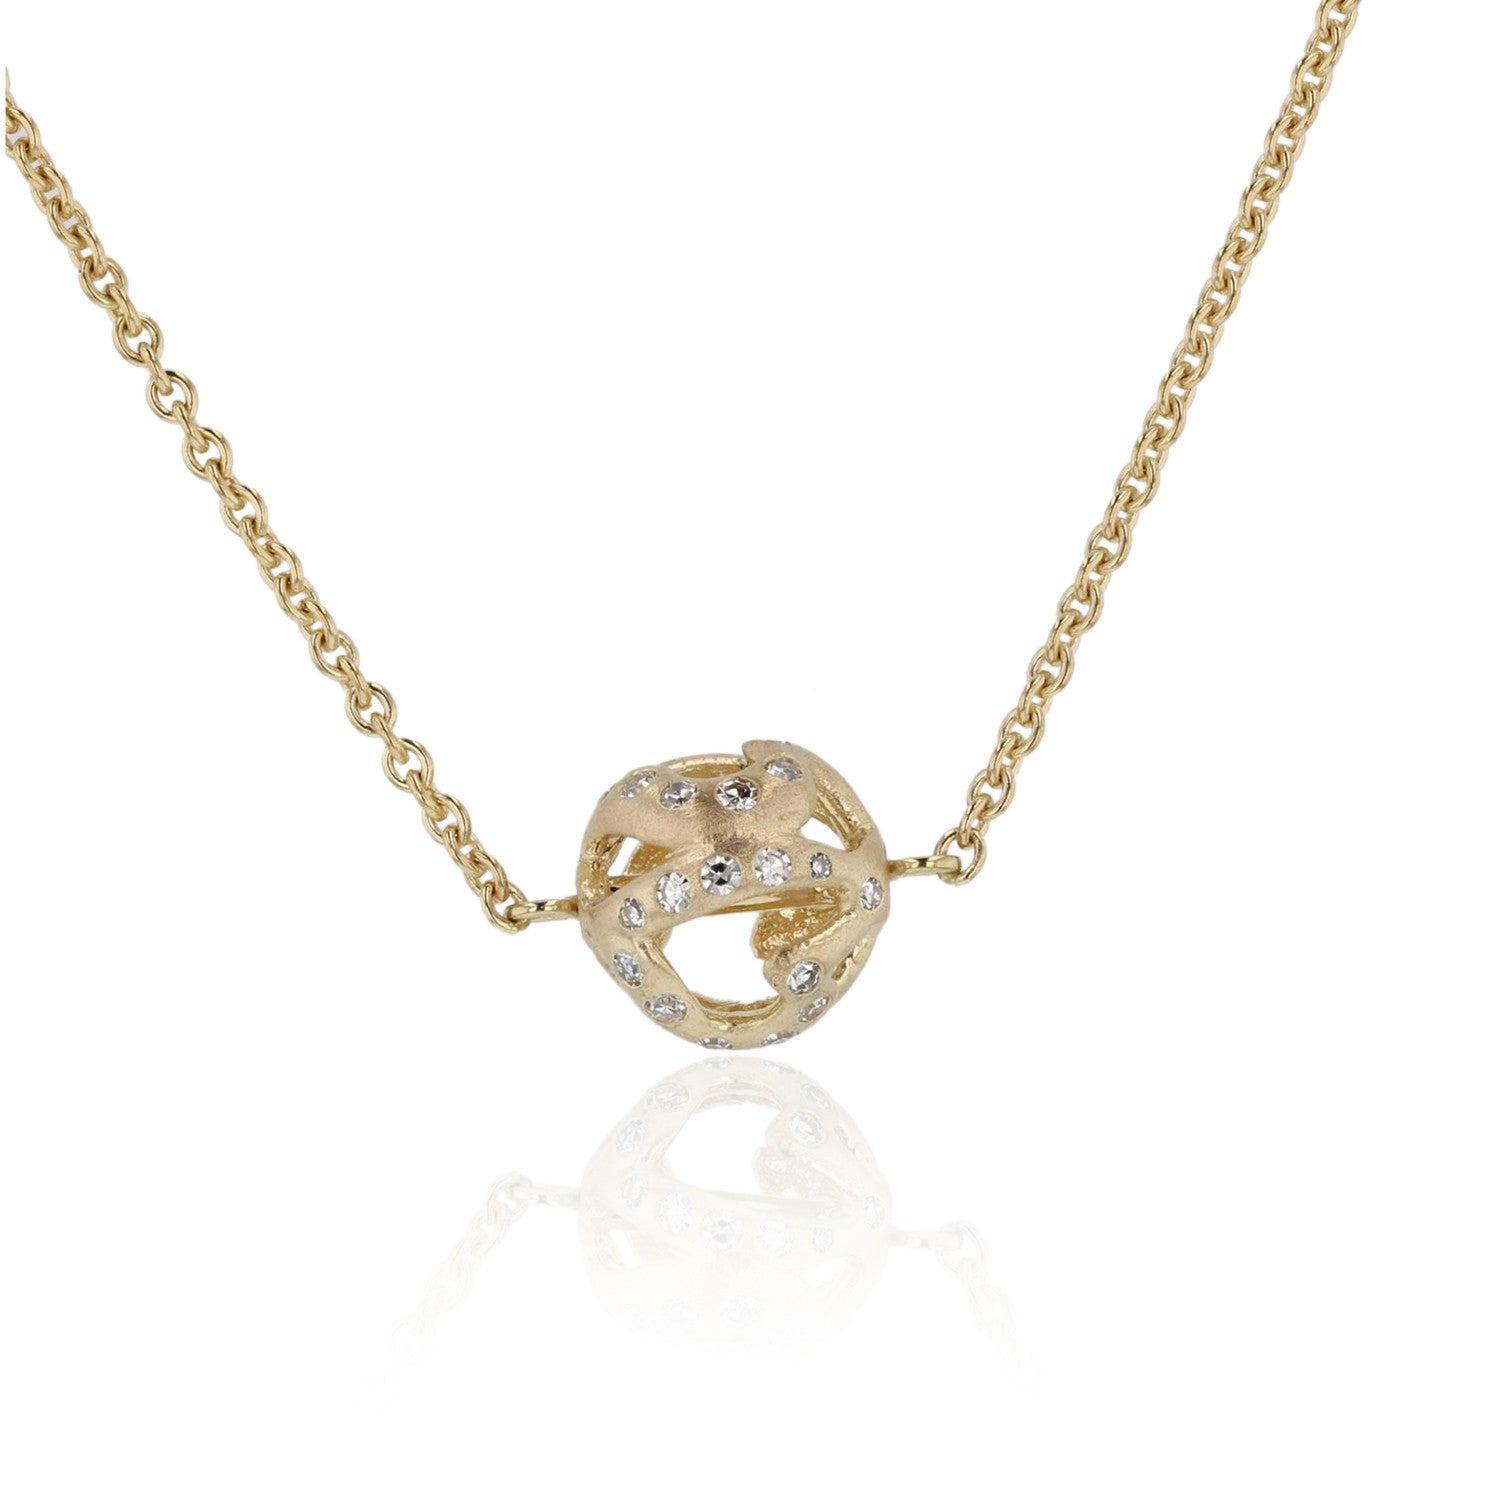 Charm Ball necklace heart with diamonds - 18K yellow gold